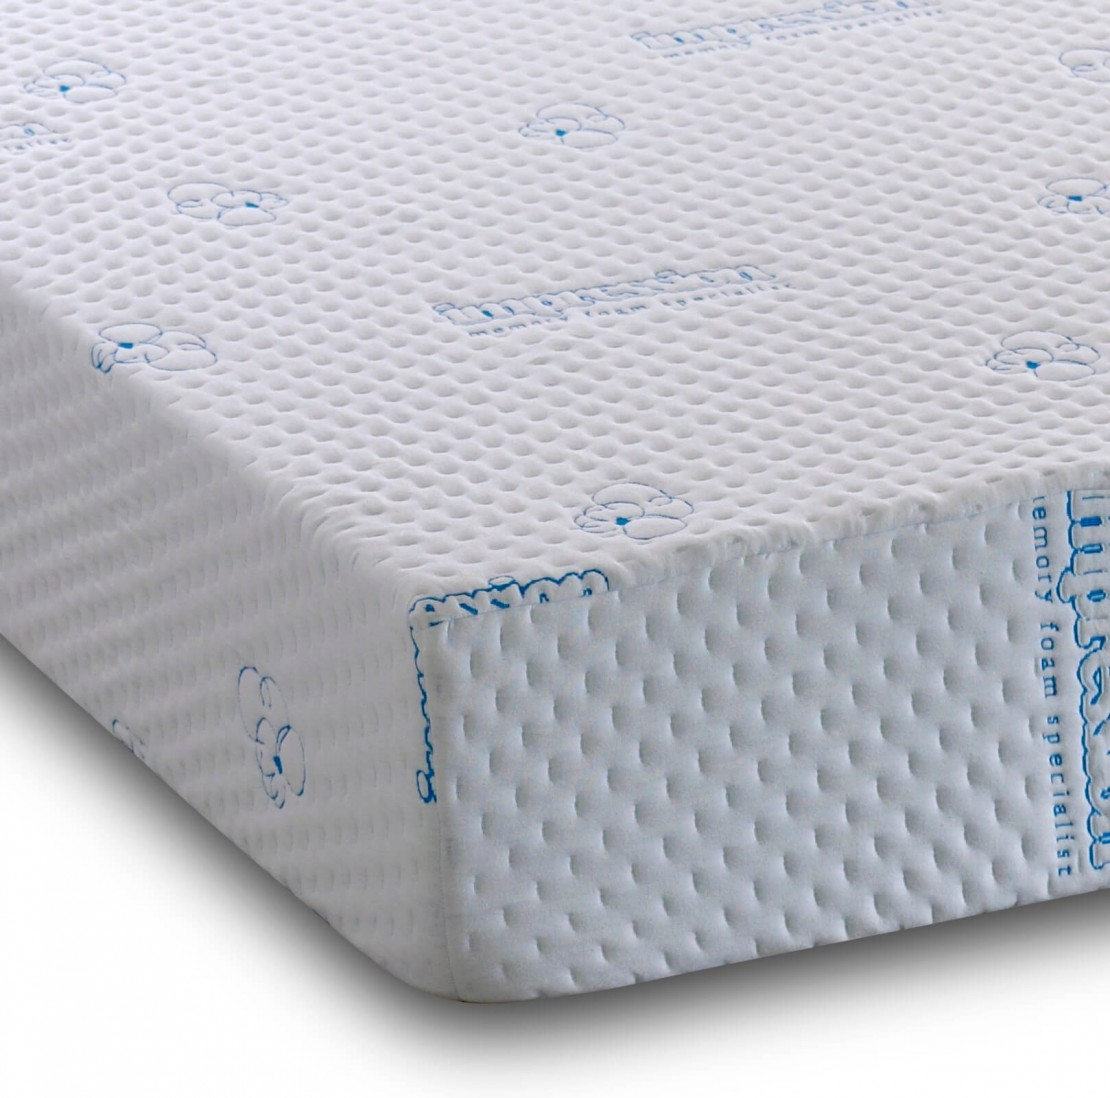 /_images/product-photos/visco-therapy-visco-1000-hd-memory-foam-regular-mattress-a.jpg